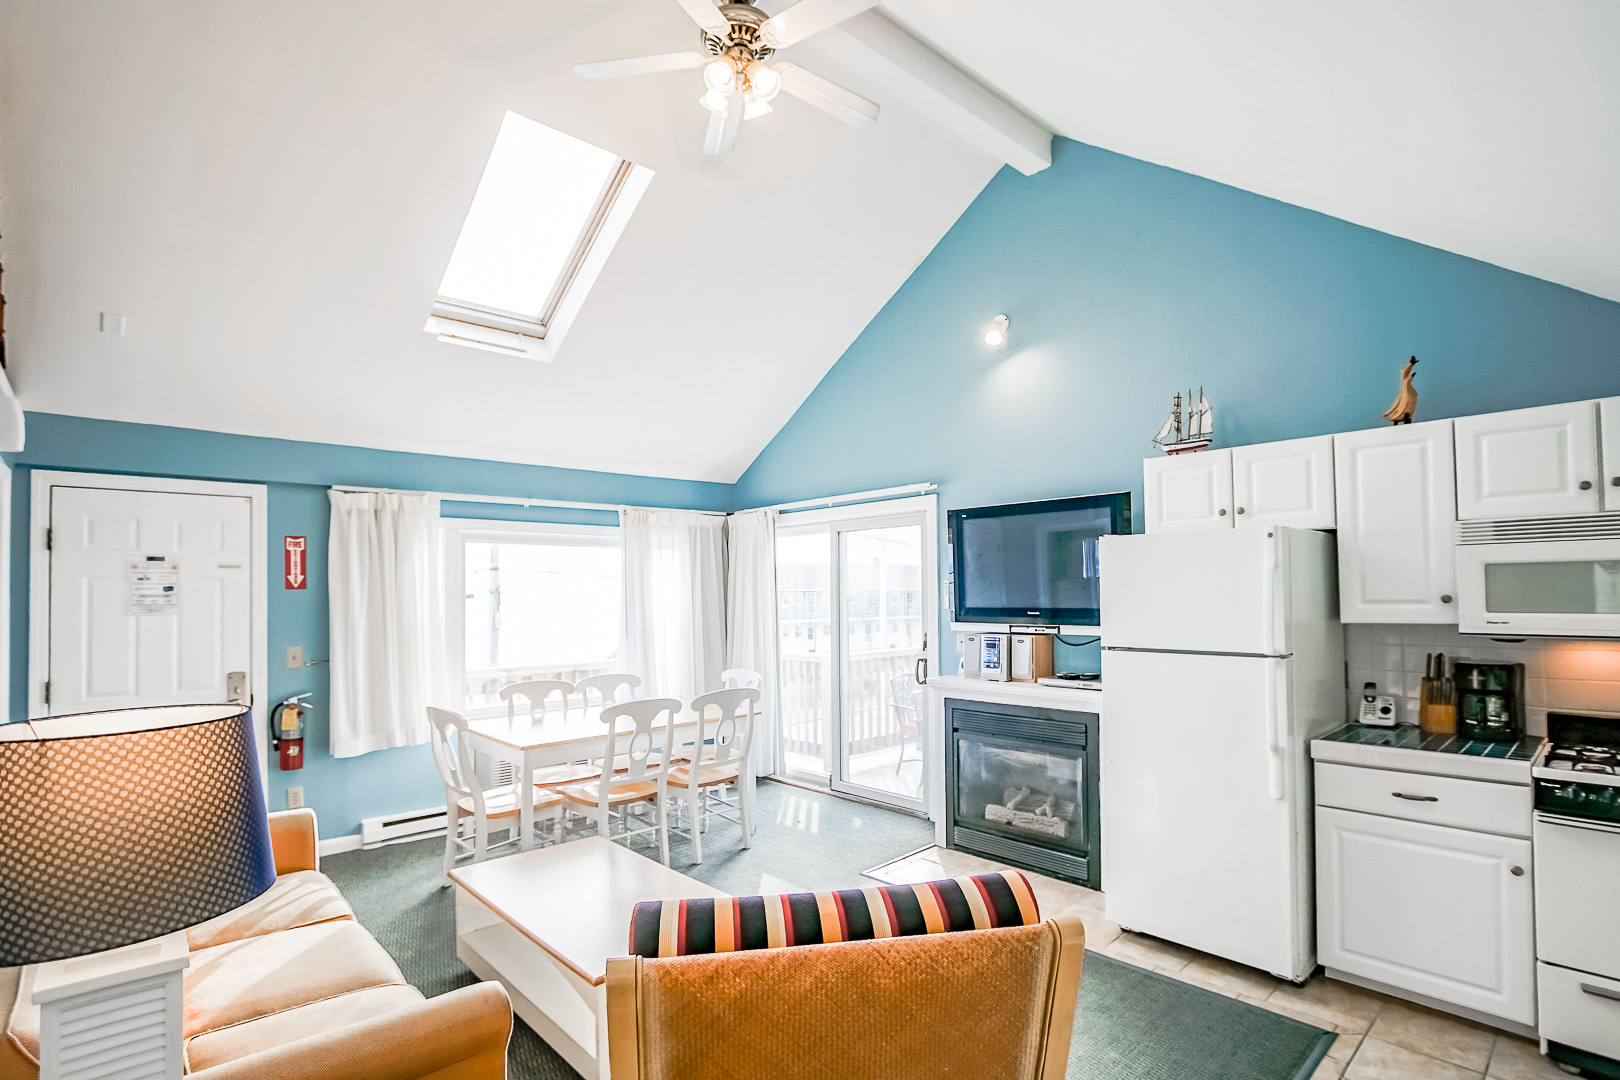 A vibrant living room area with a kitchen at VRI's Seawinds II Resort in Massachusetts.